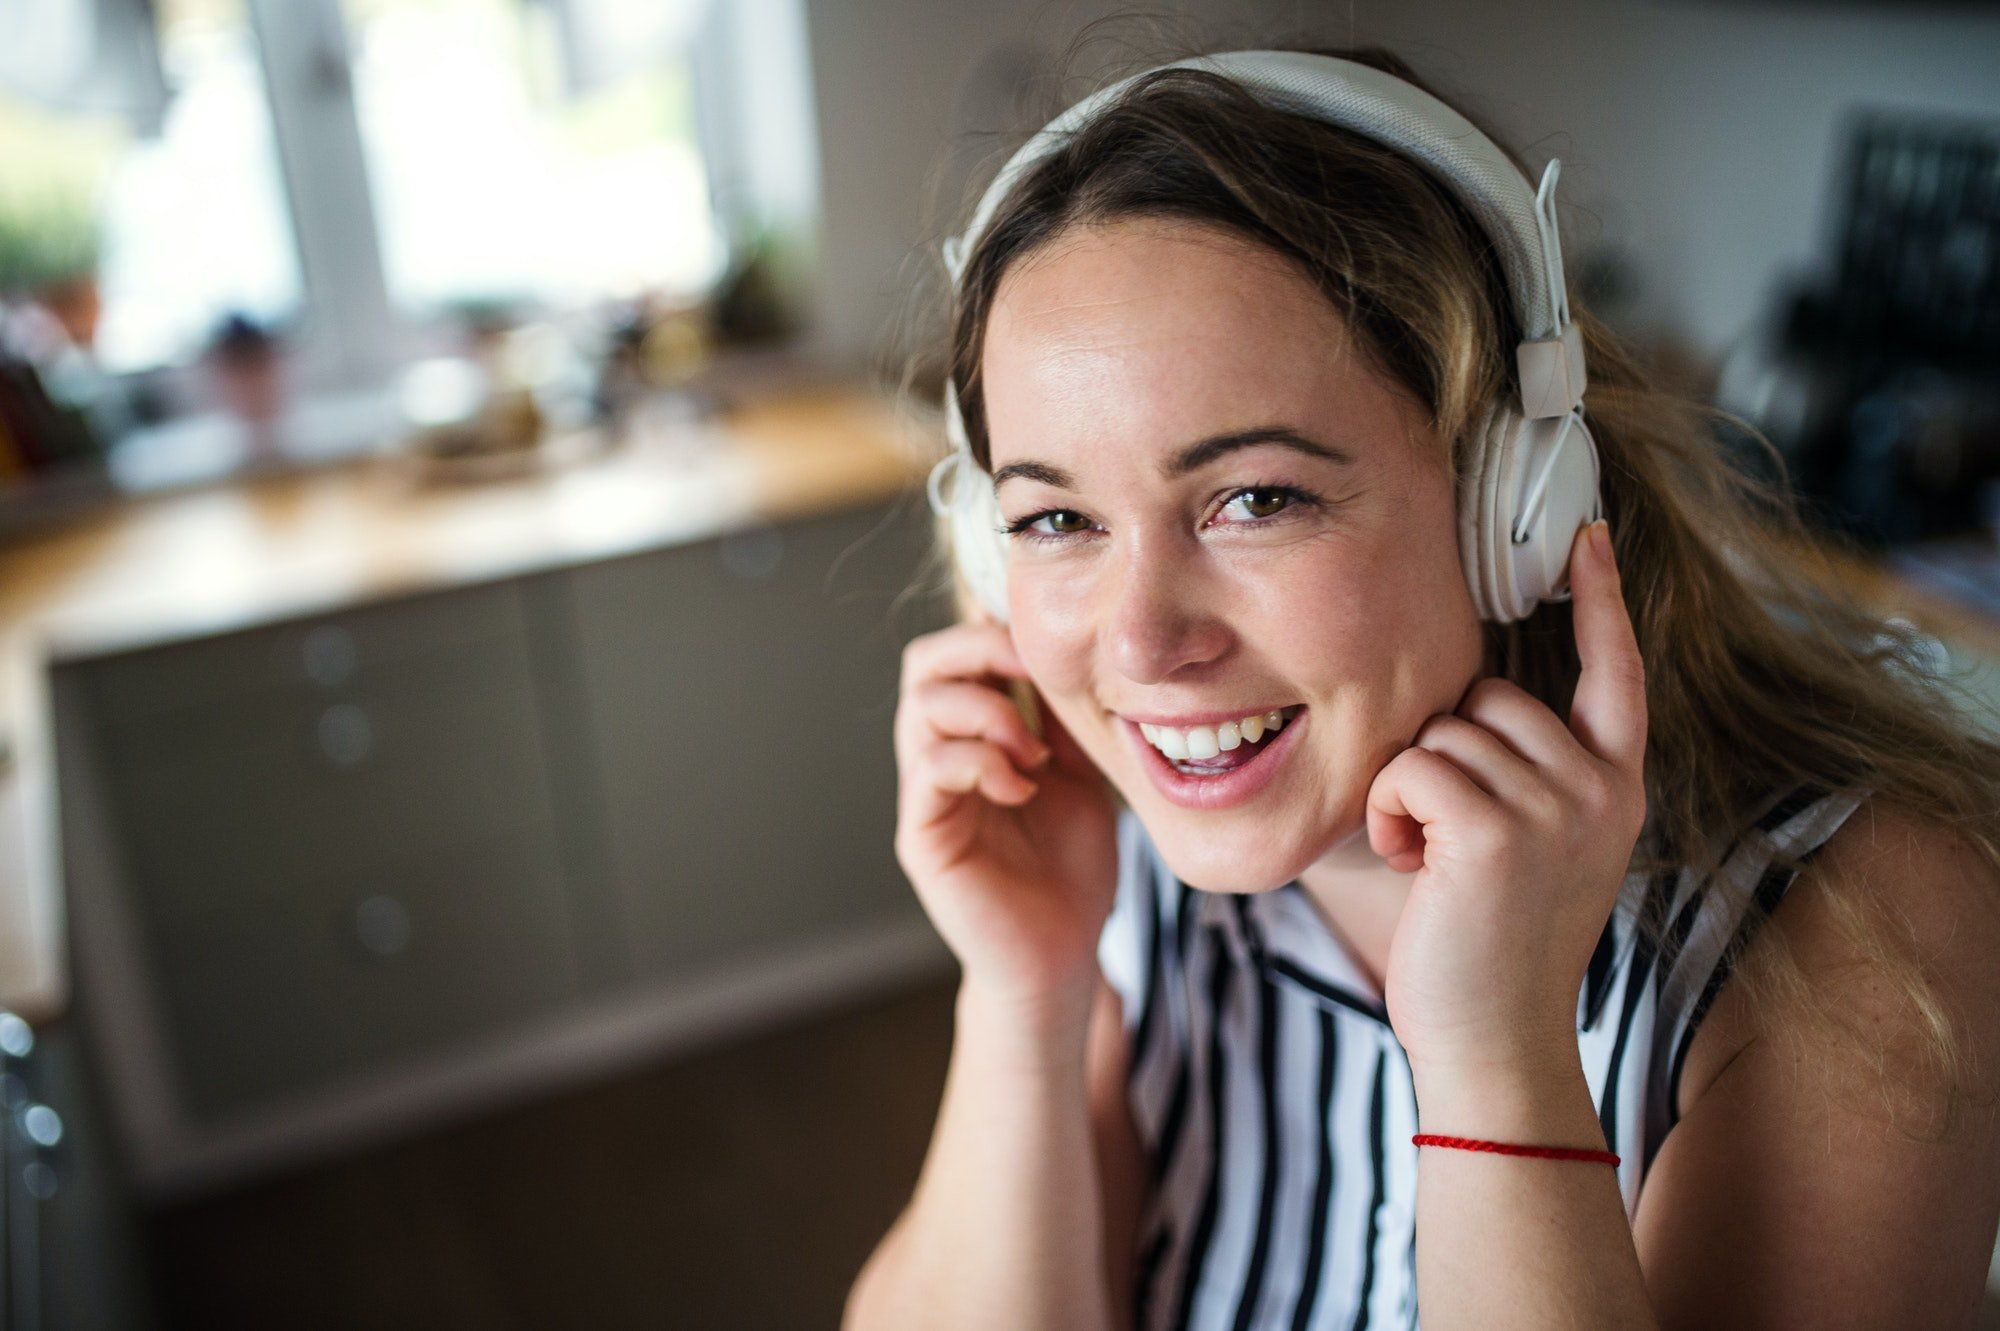 Young woman with headphones relaxing indoors at home, listening to music